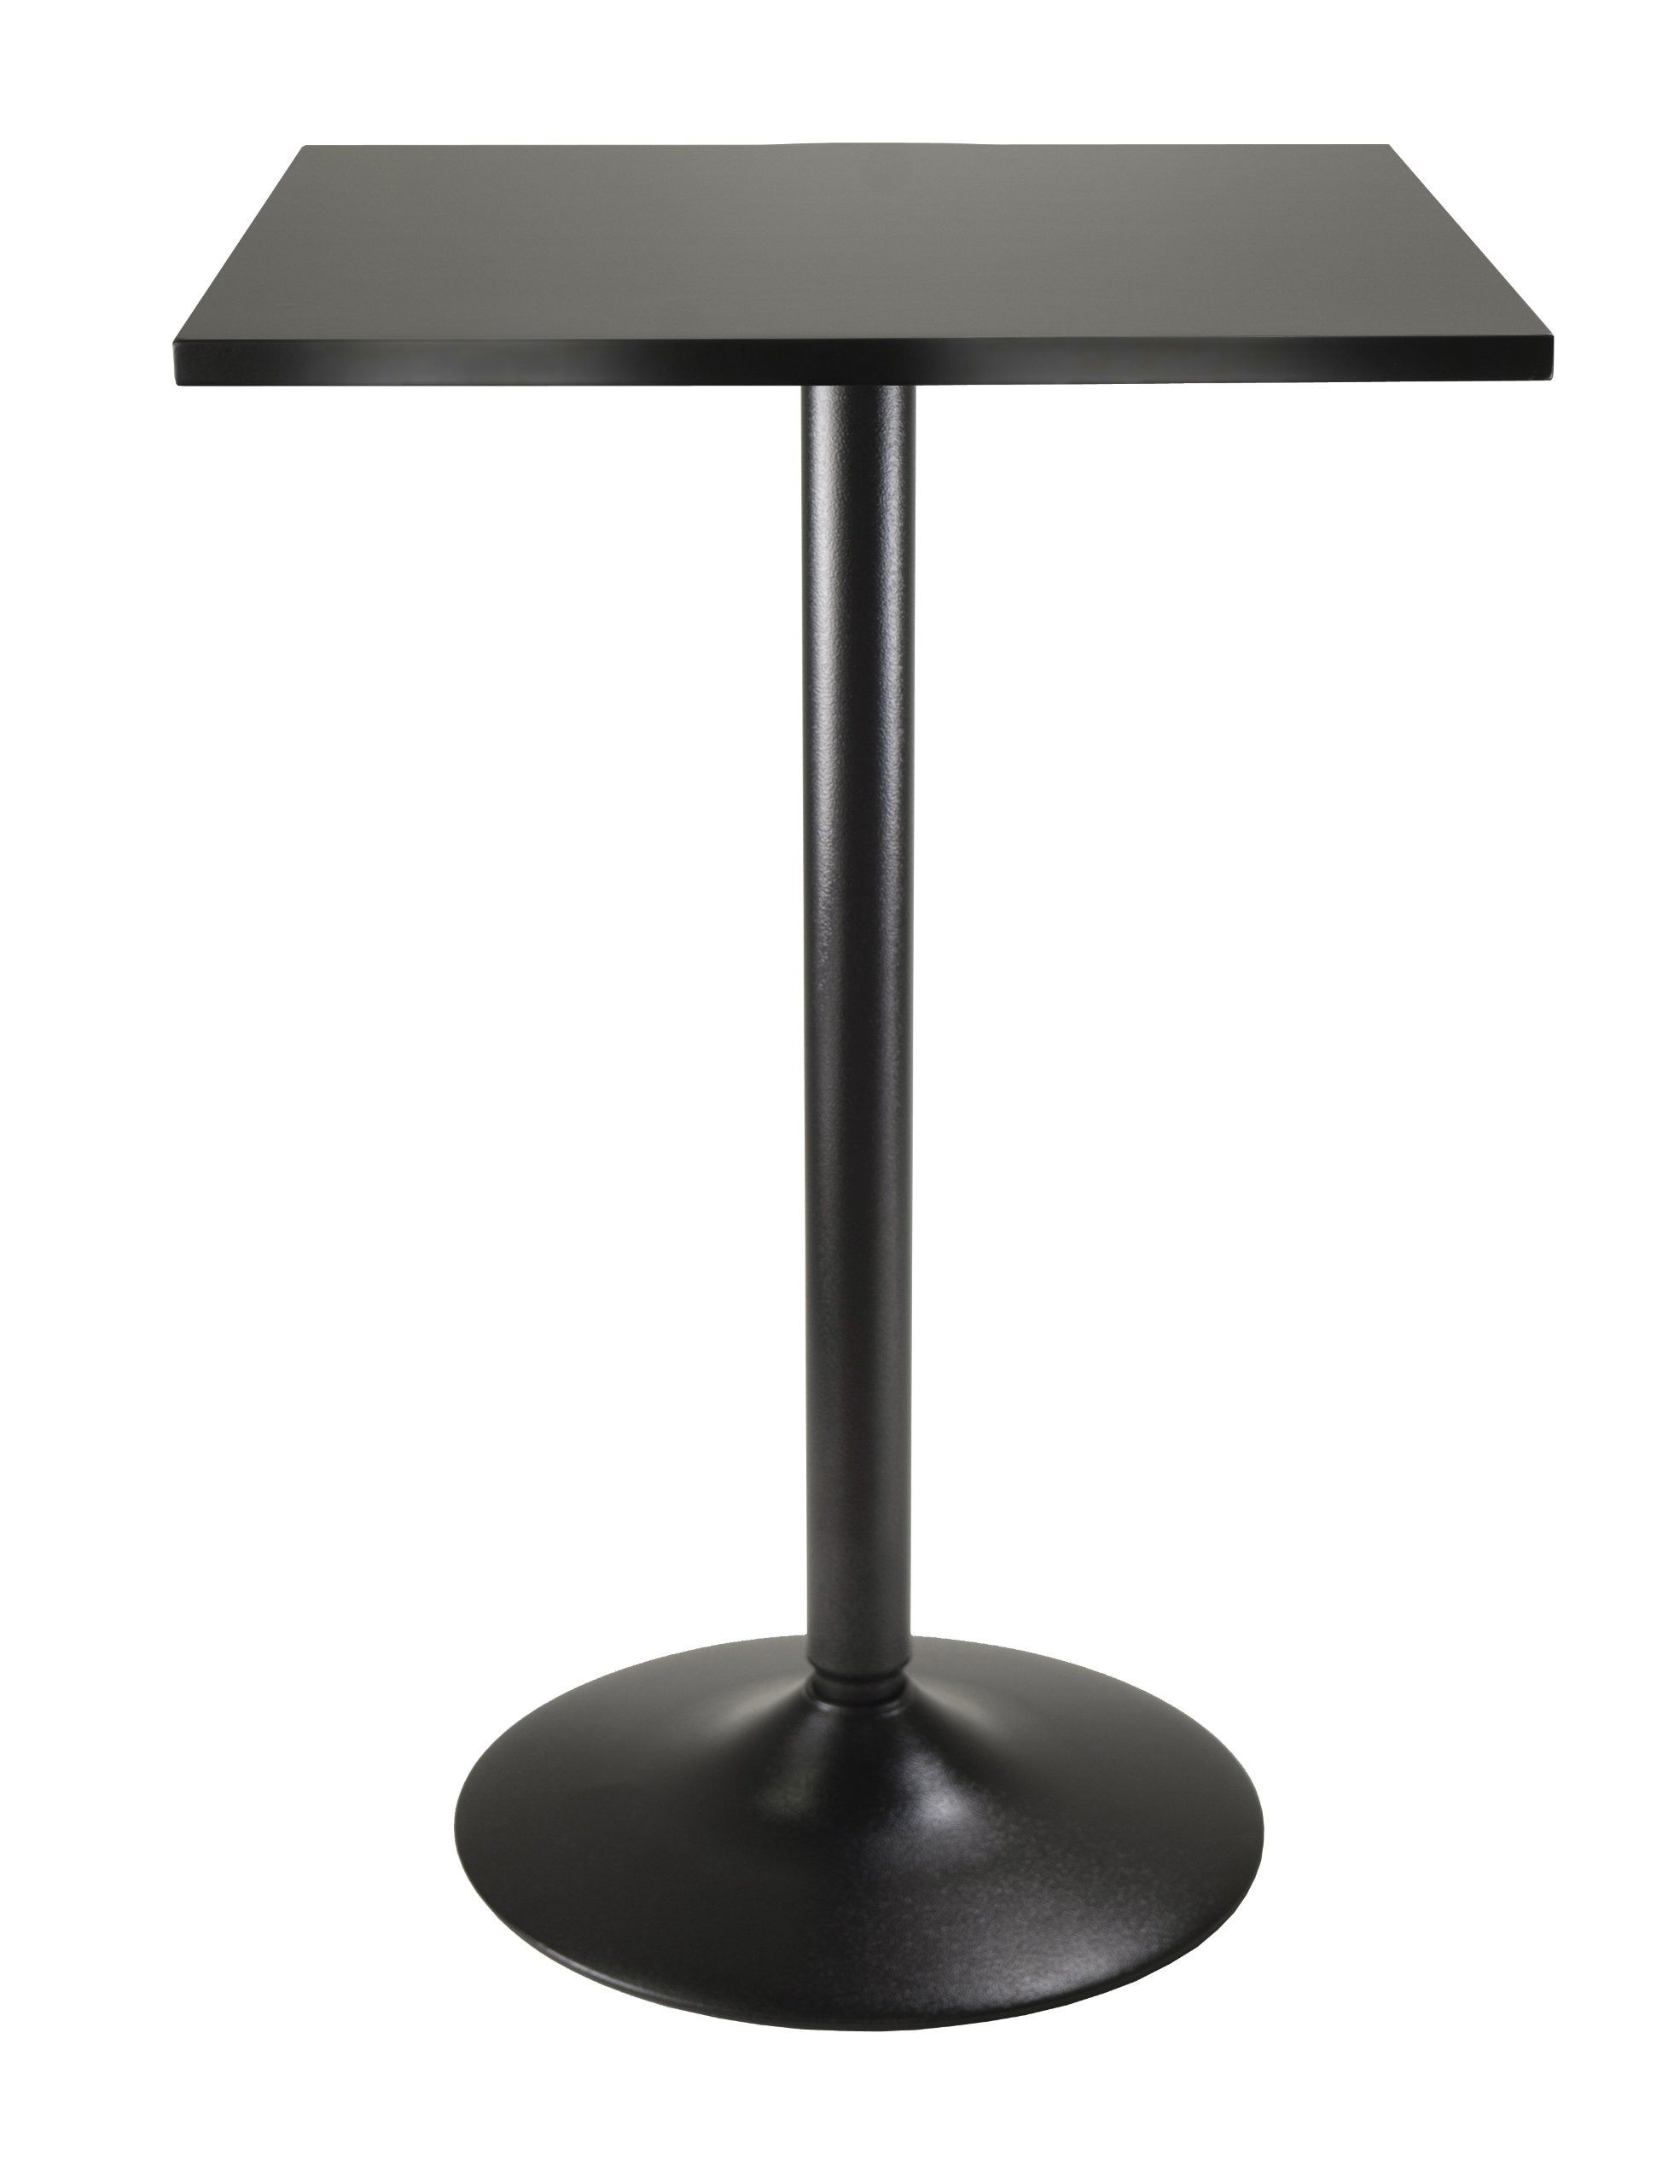 "T Base 22 Wide Bottom Perfect Table Base for Bar Use 41 H Bar Height x 3/"" Column Indoor End Table Base KIT for Bar Table Tops Bar Height Restaurant Table Base Black Color 2 Prong Style"